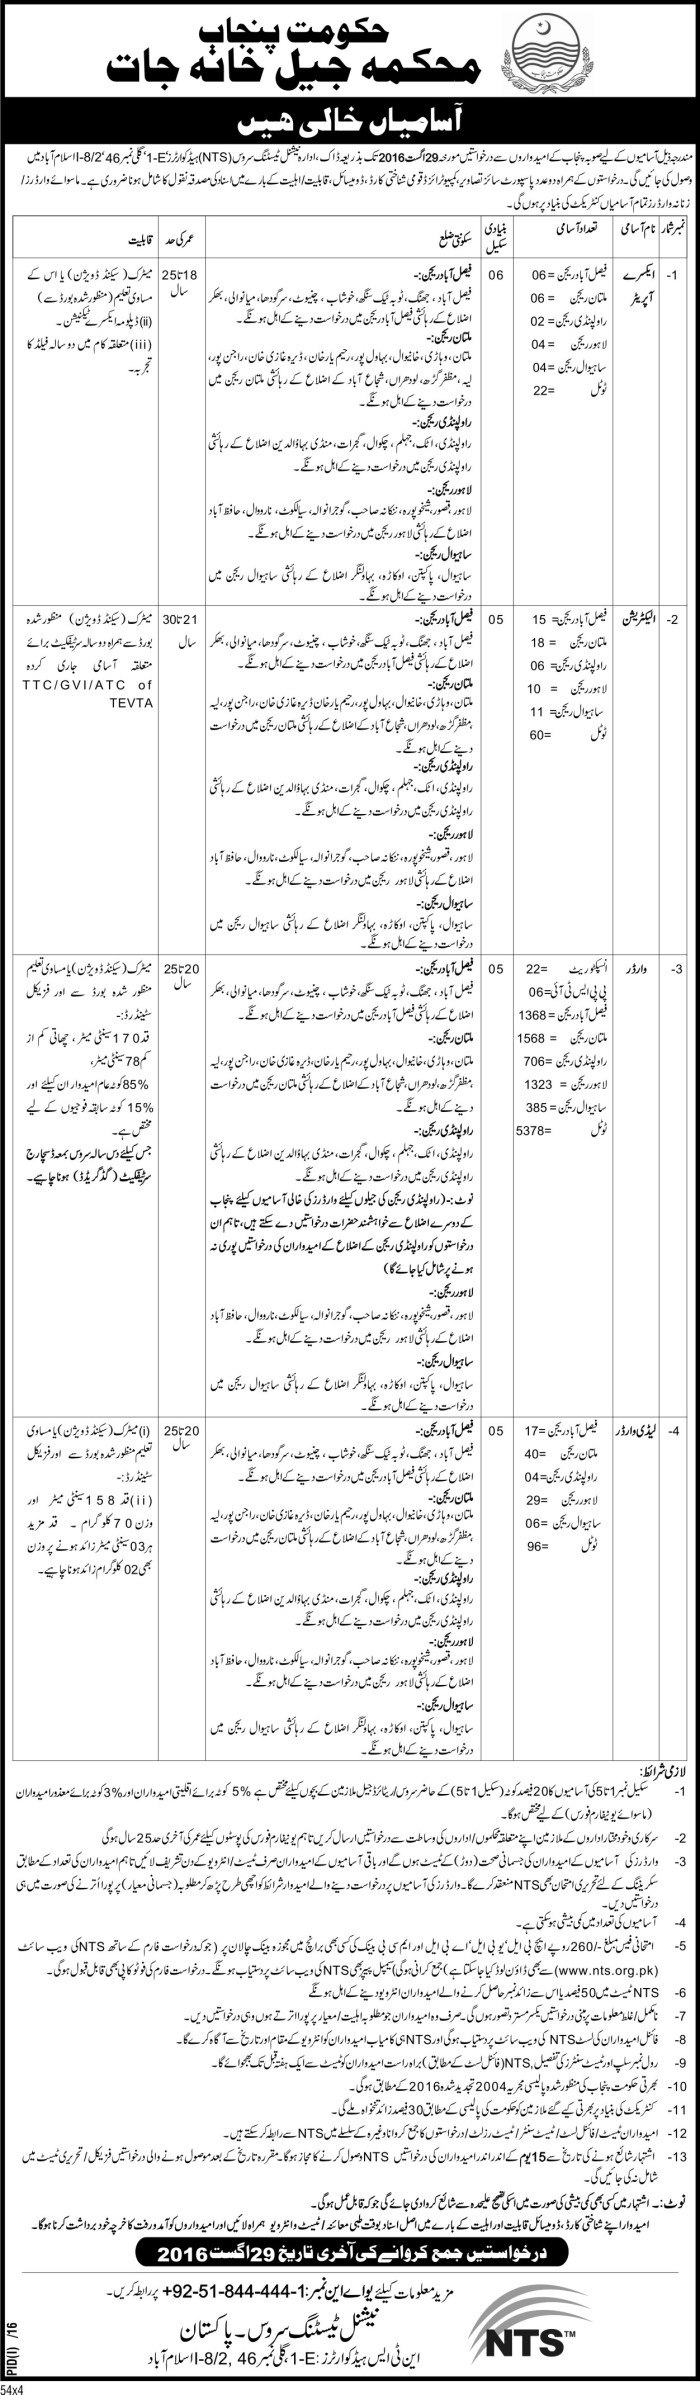 Government Of The Punjab Prison Department NTS Entry Test Result 2016-2